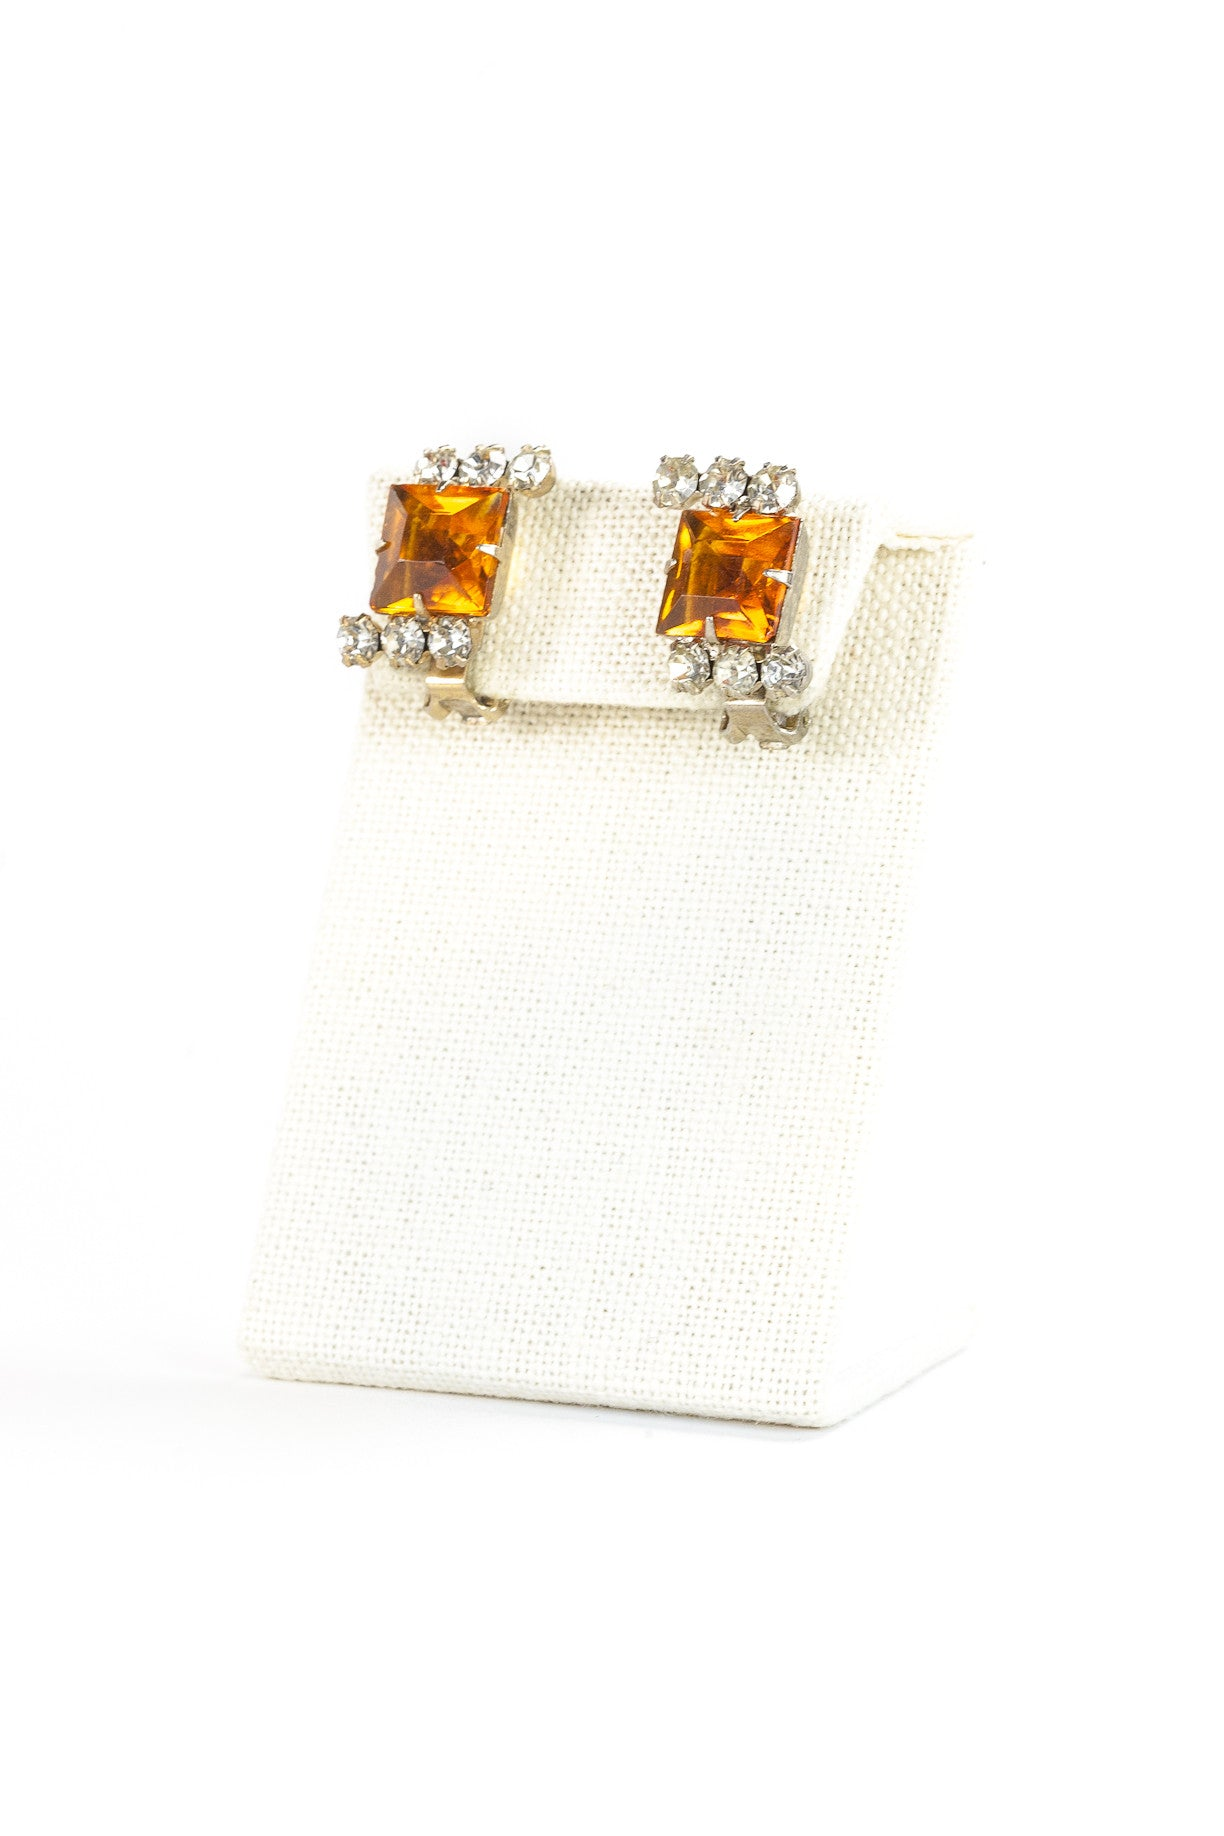 60's__Vintage__Square Amber Rhinestone Clips